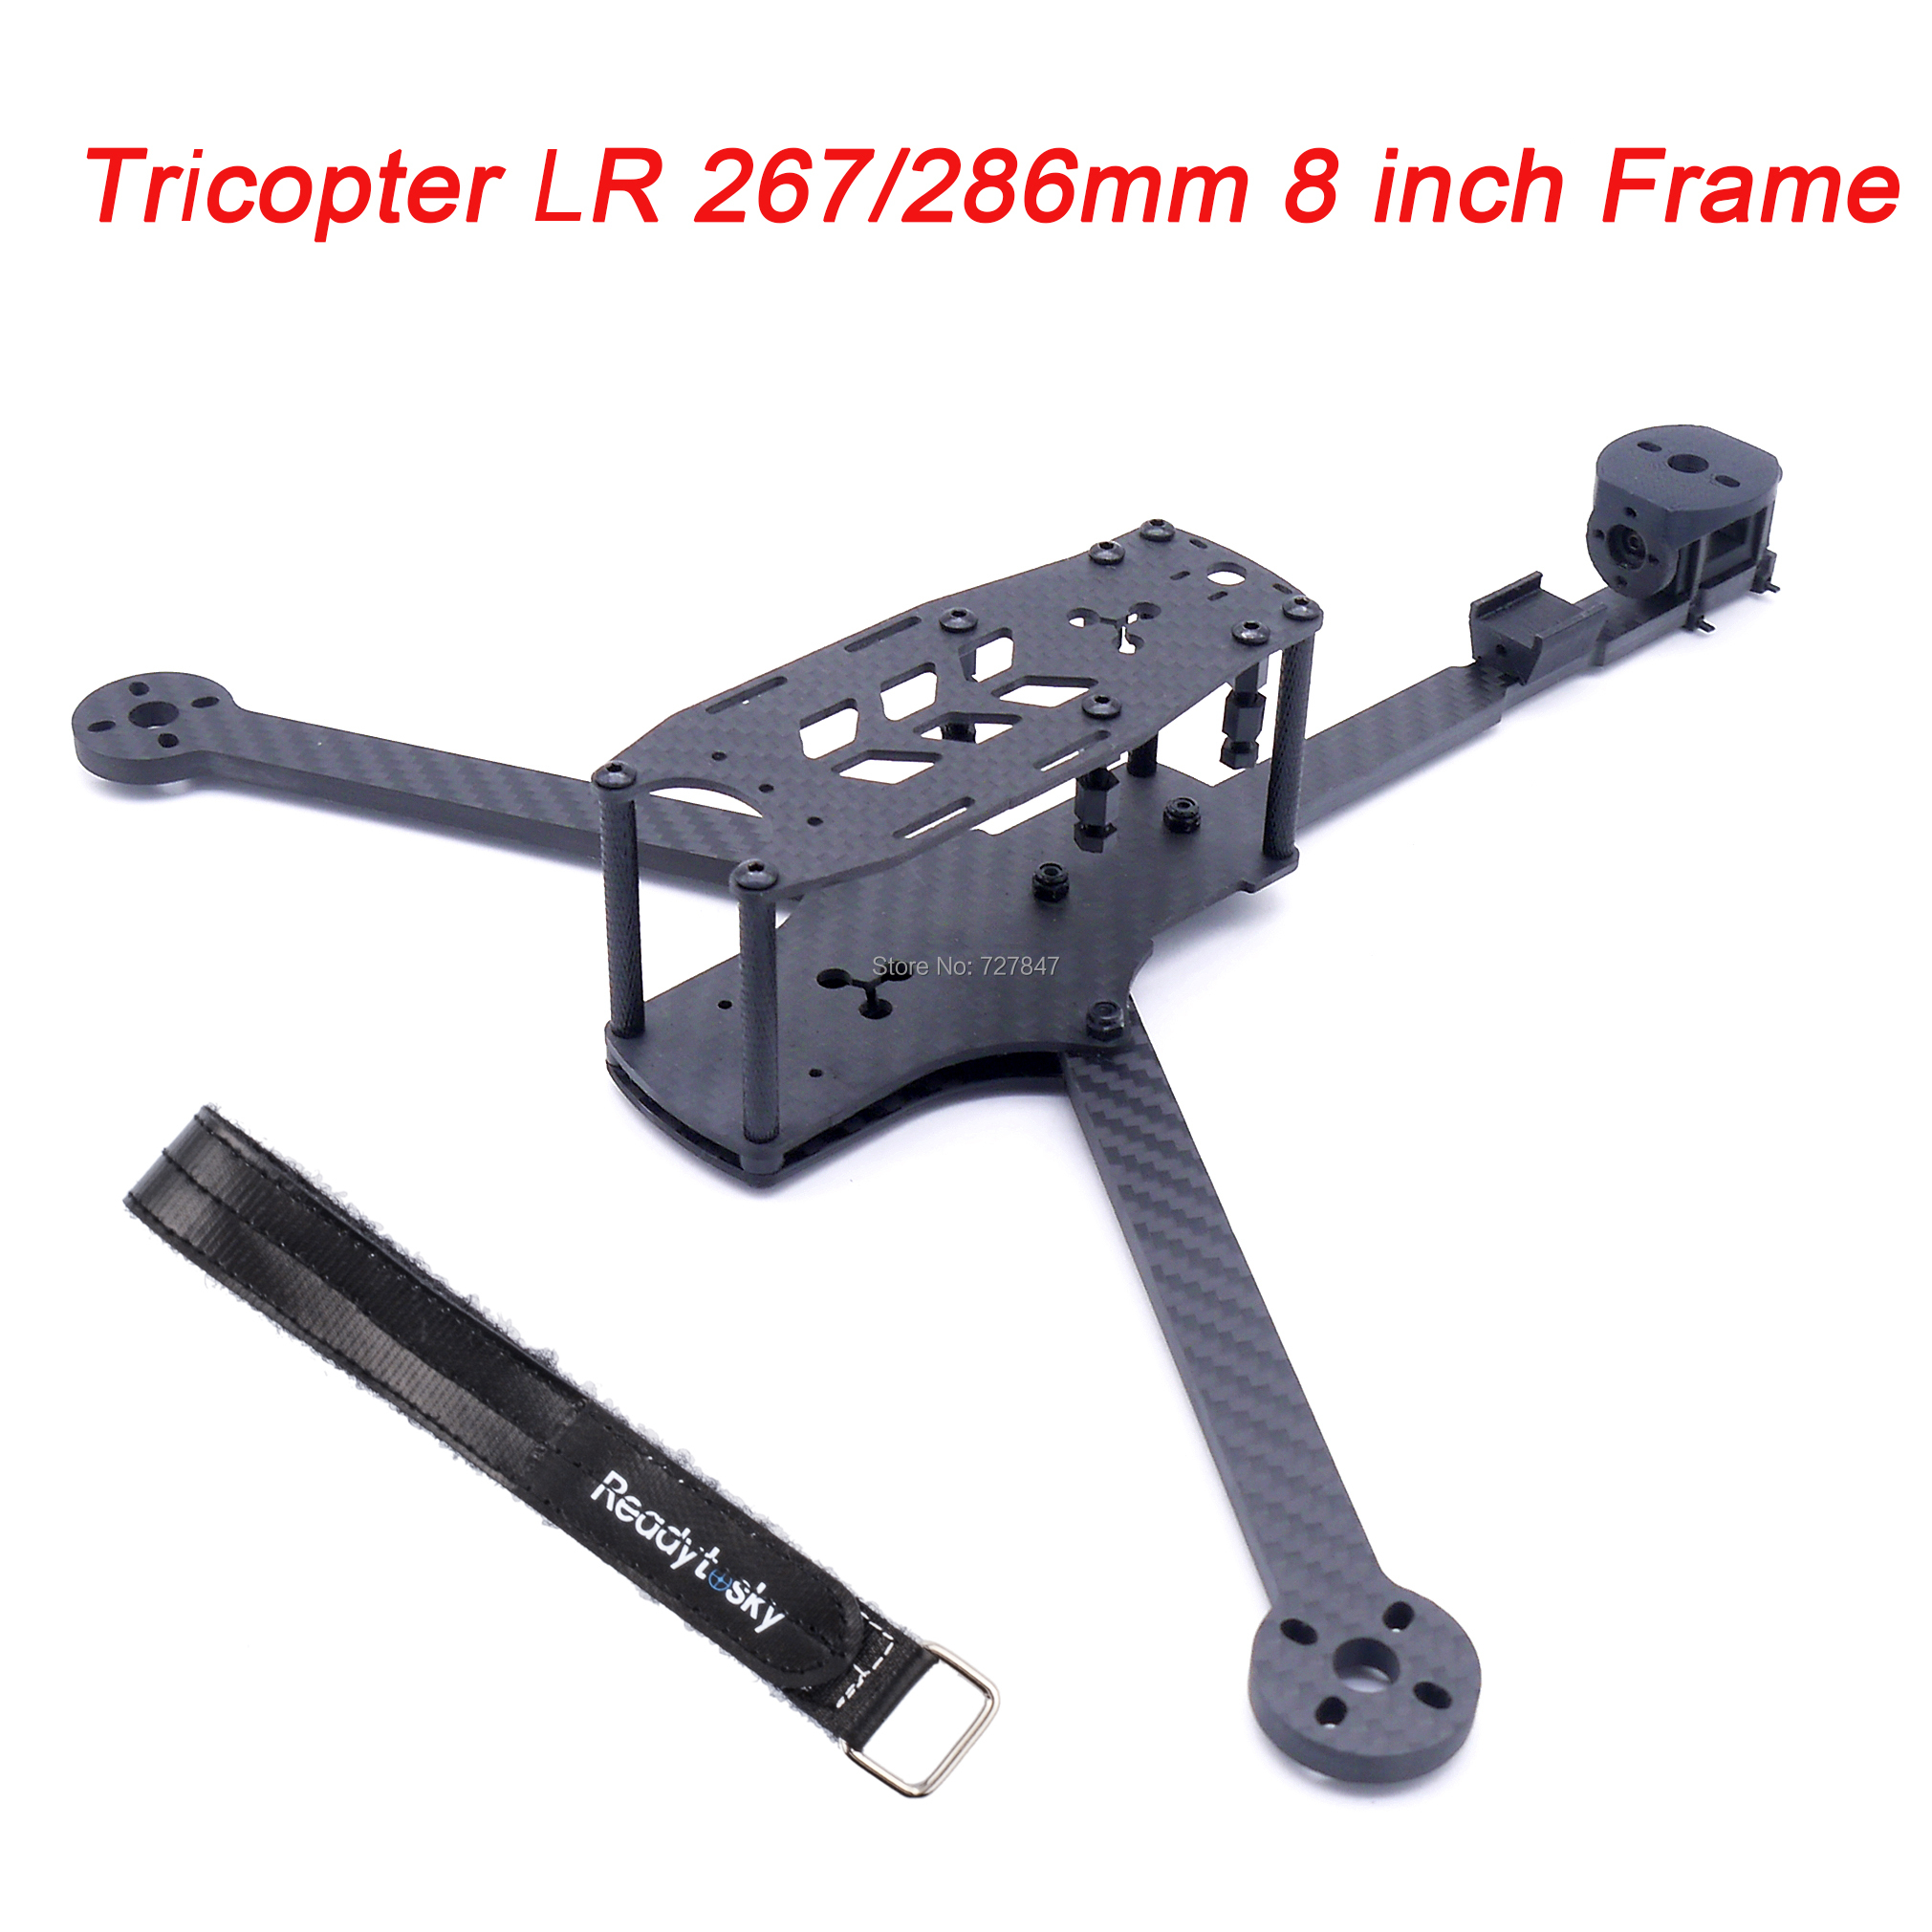 NEW Tricopter LR 267 / 286mm 8 Inch 3 Axis Y Type Pure Carbon Fiber Frame With 5mm Arm For RC FPV Racing Drone